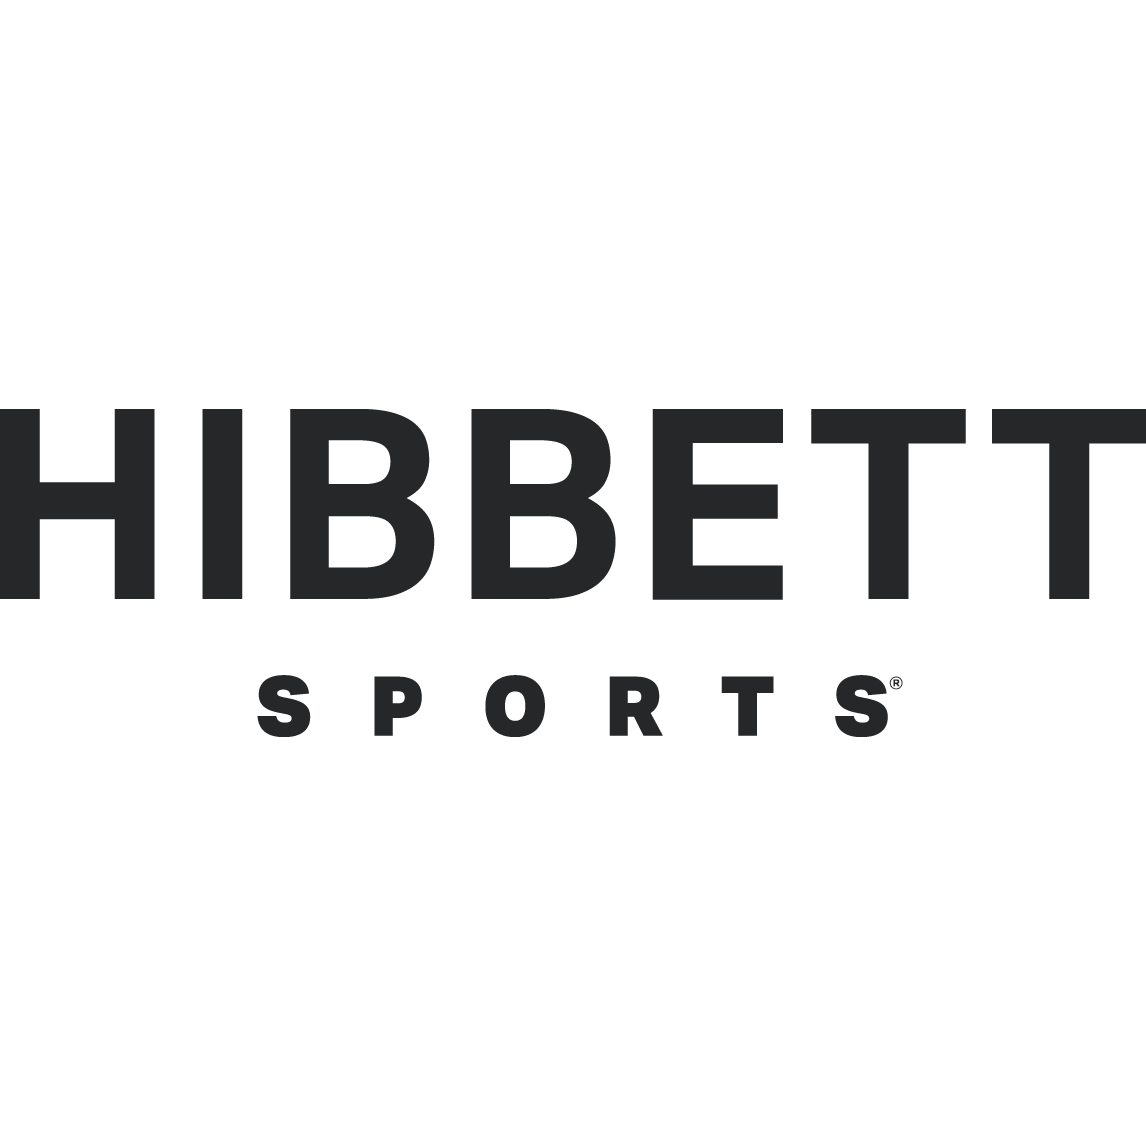 Hibbett Sports - Hutchinson, KS - Shoes